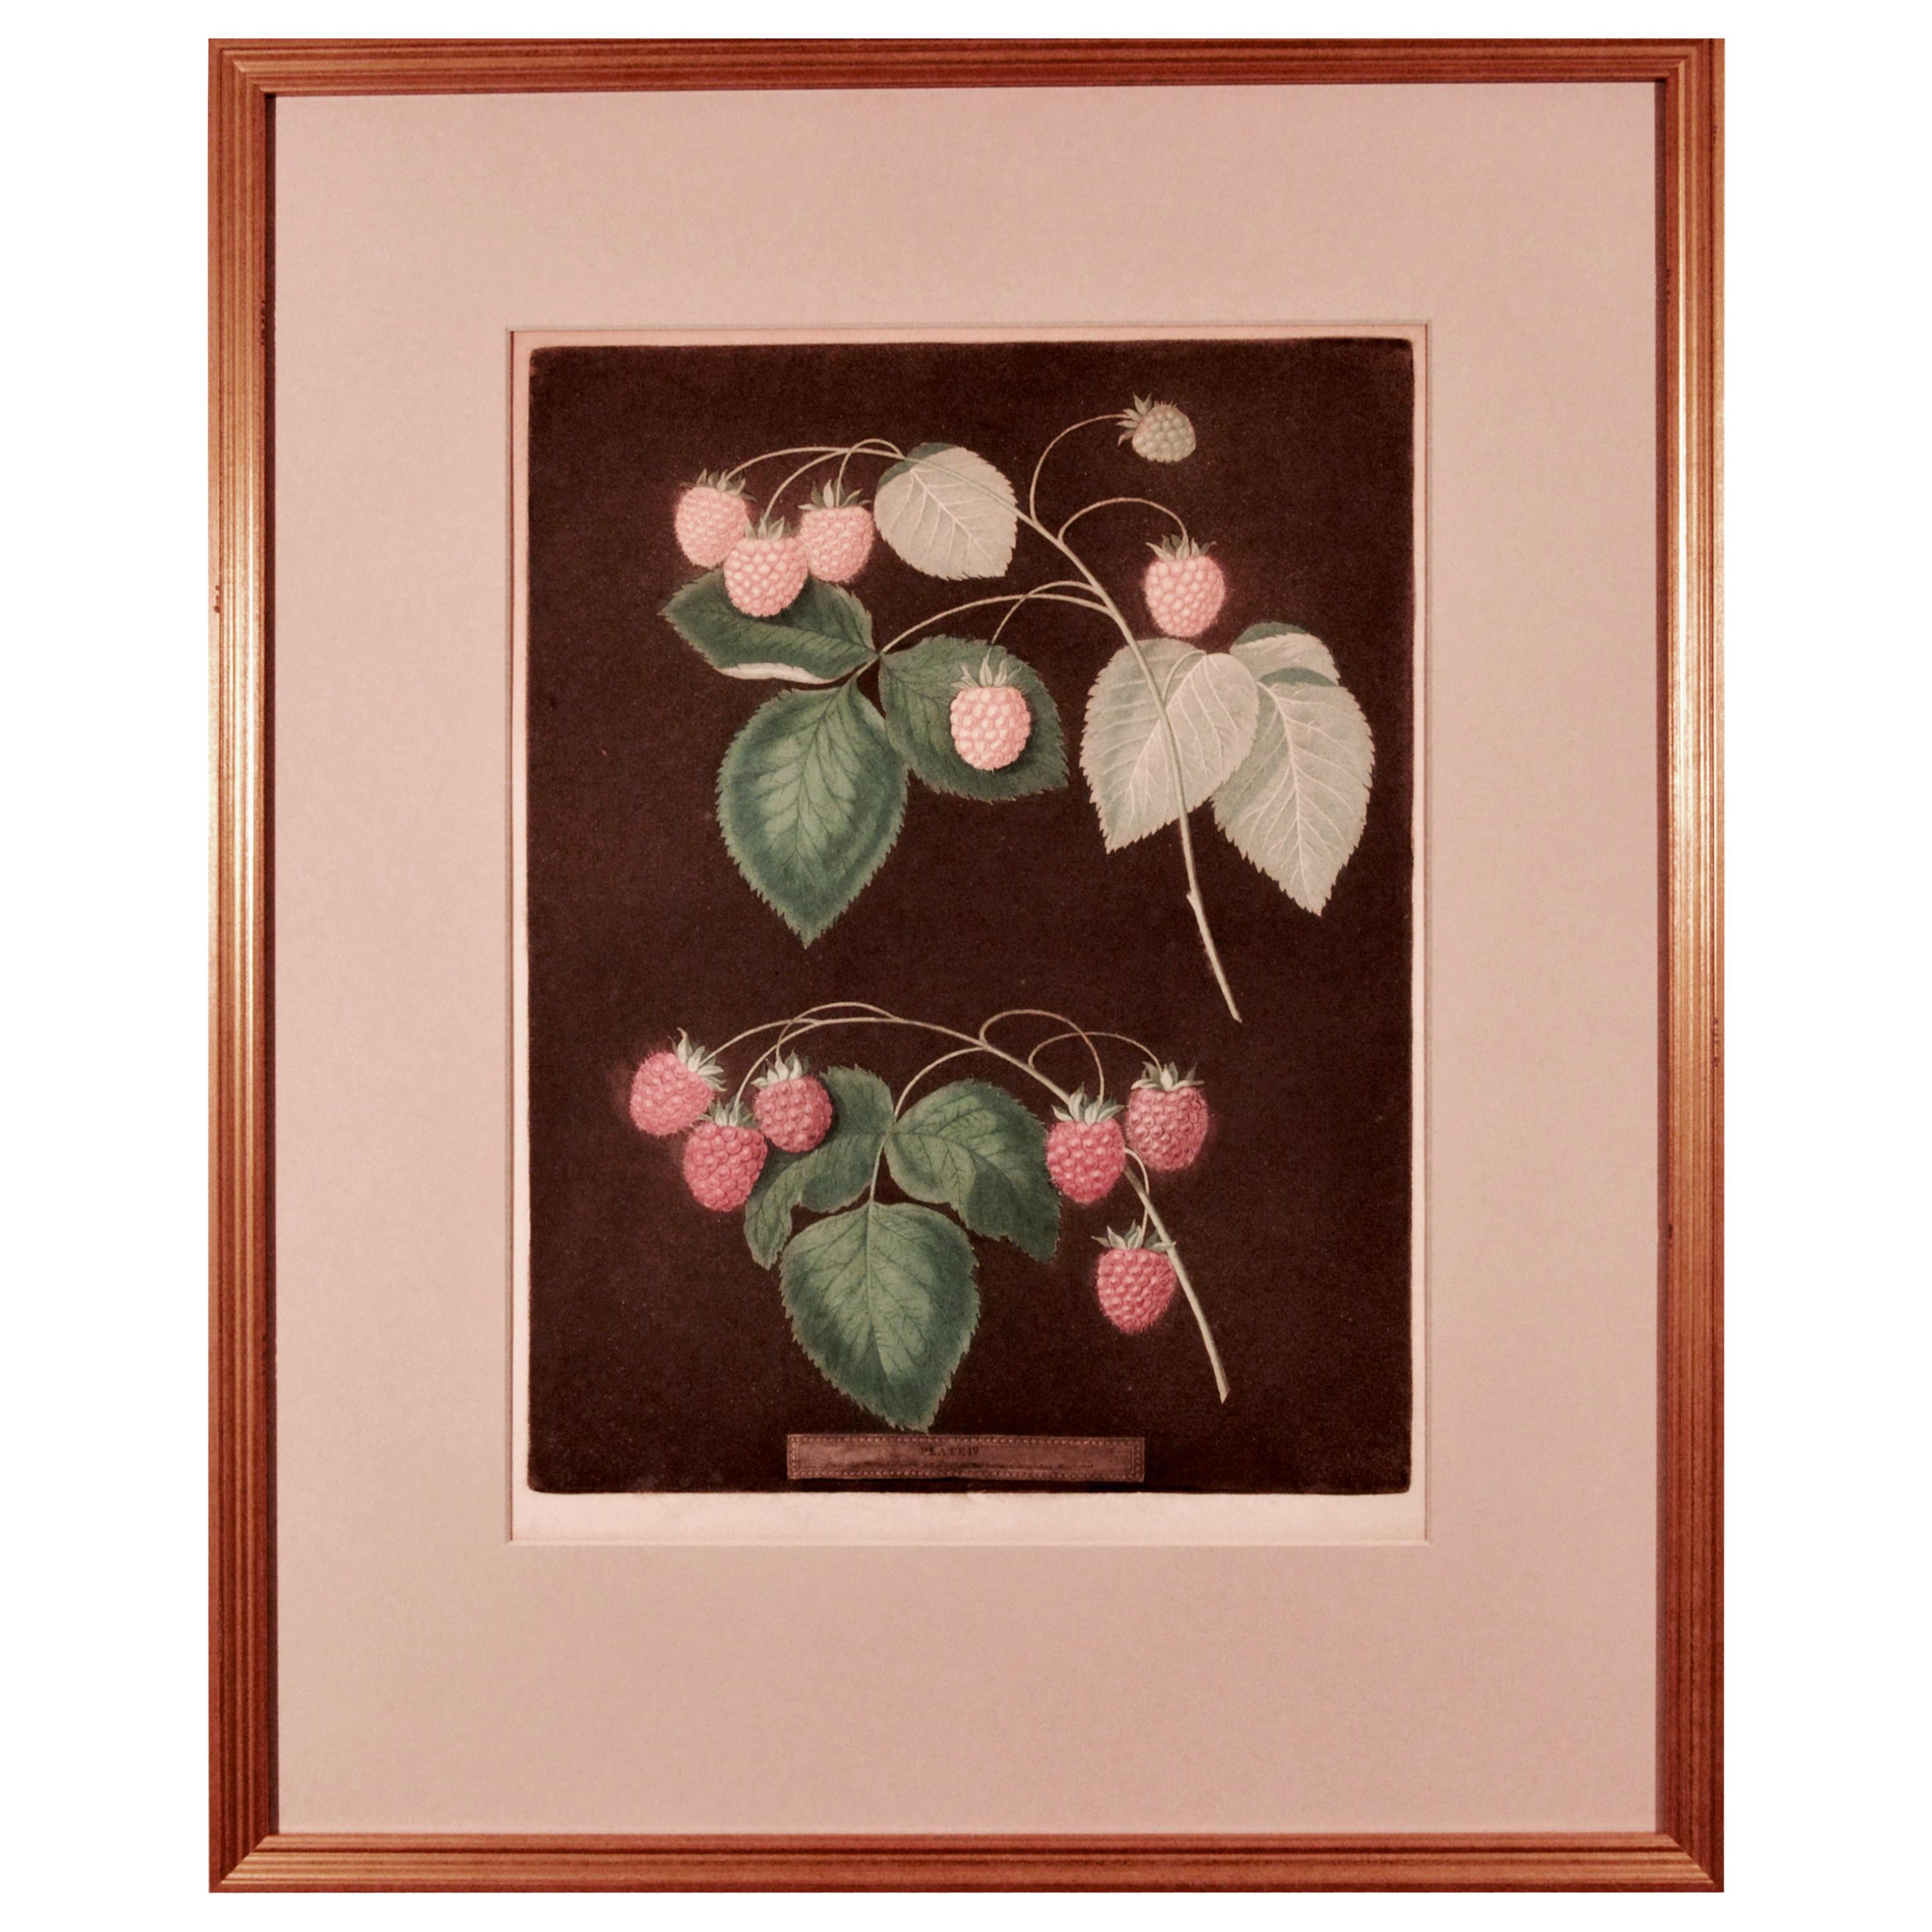 george brookshaw Print of Two Varieties of Raspberries, One Yellow and One Red